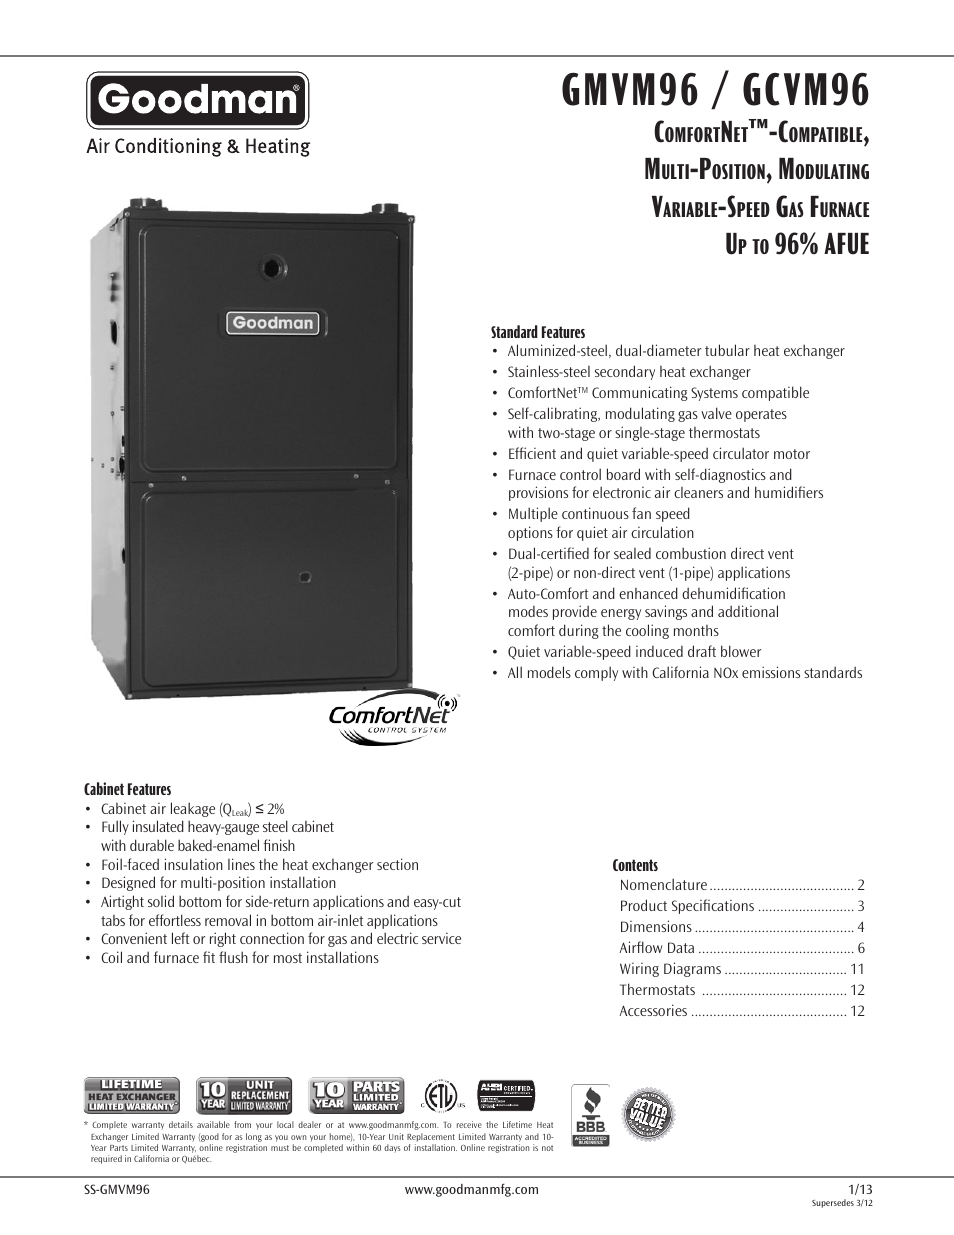 Goodman Mfg Variable Speed Gas Furnace Gmvm96 User Manual